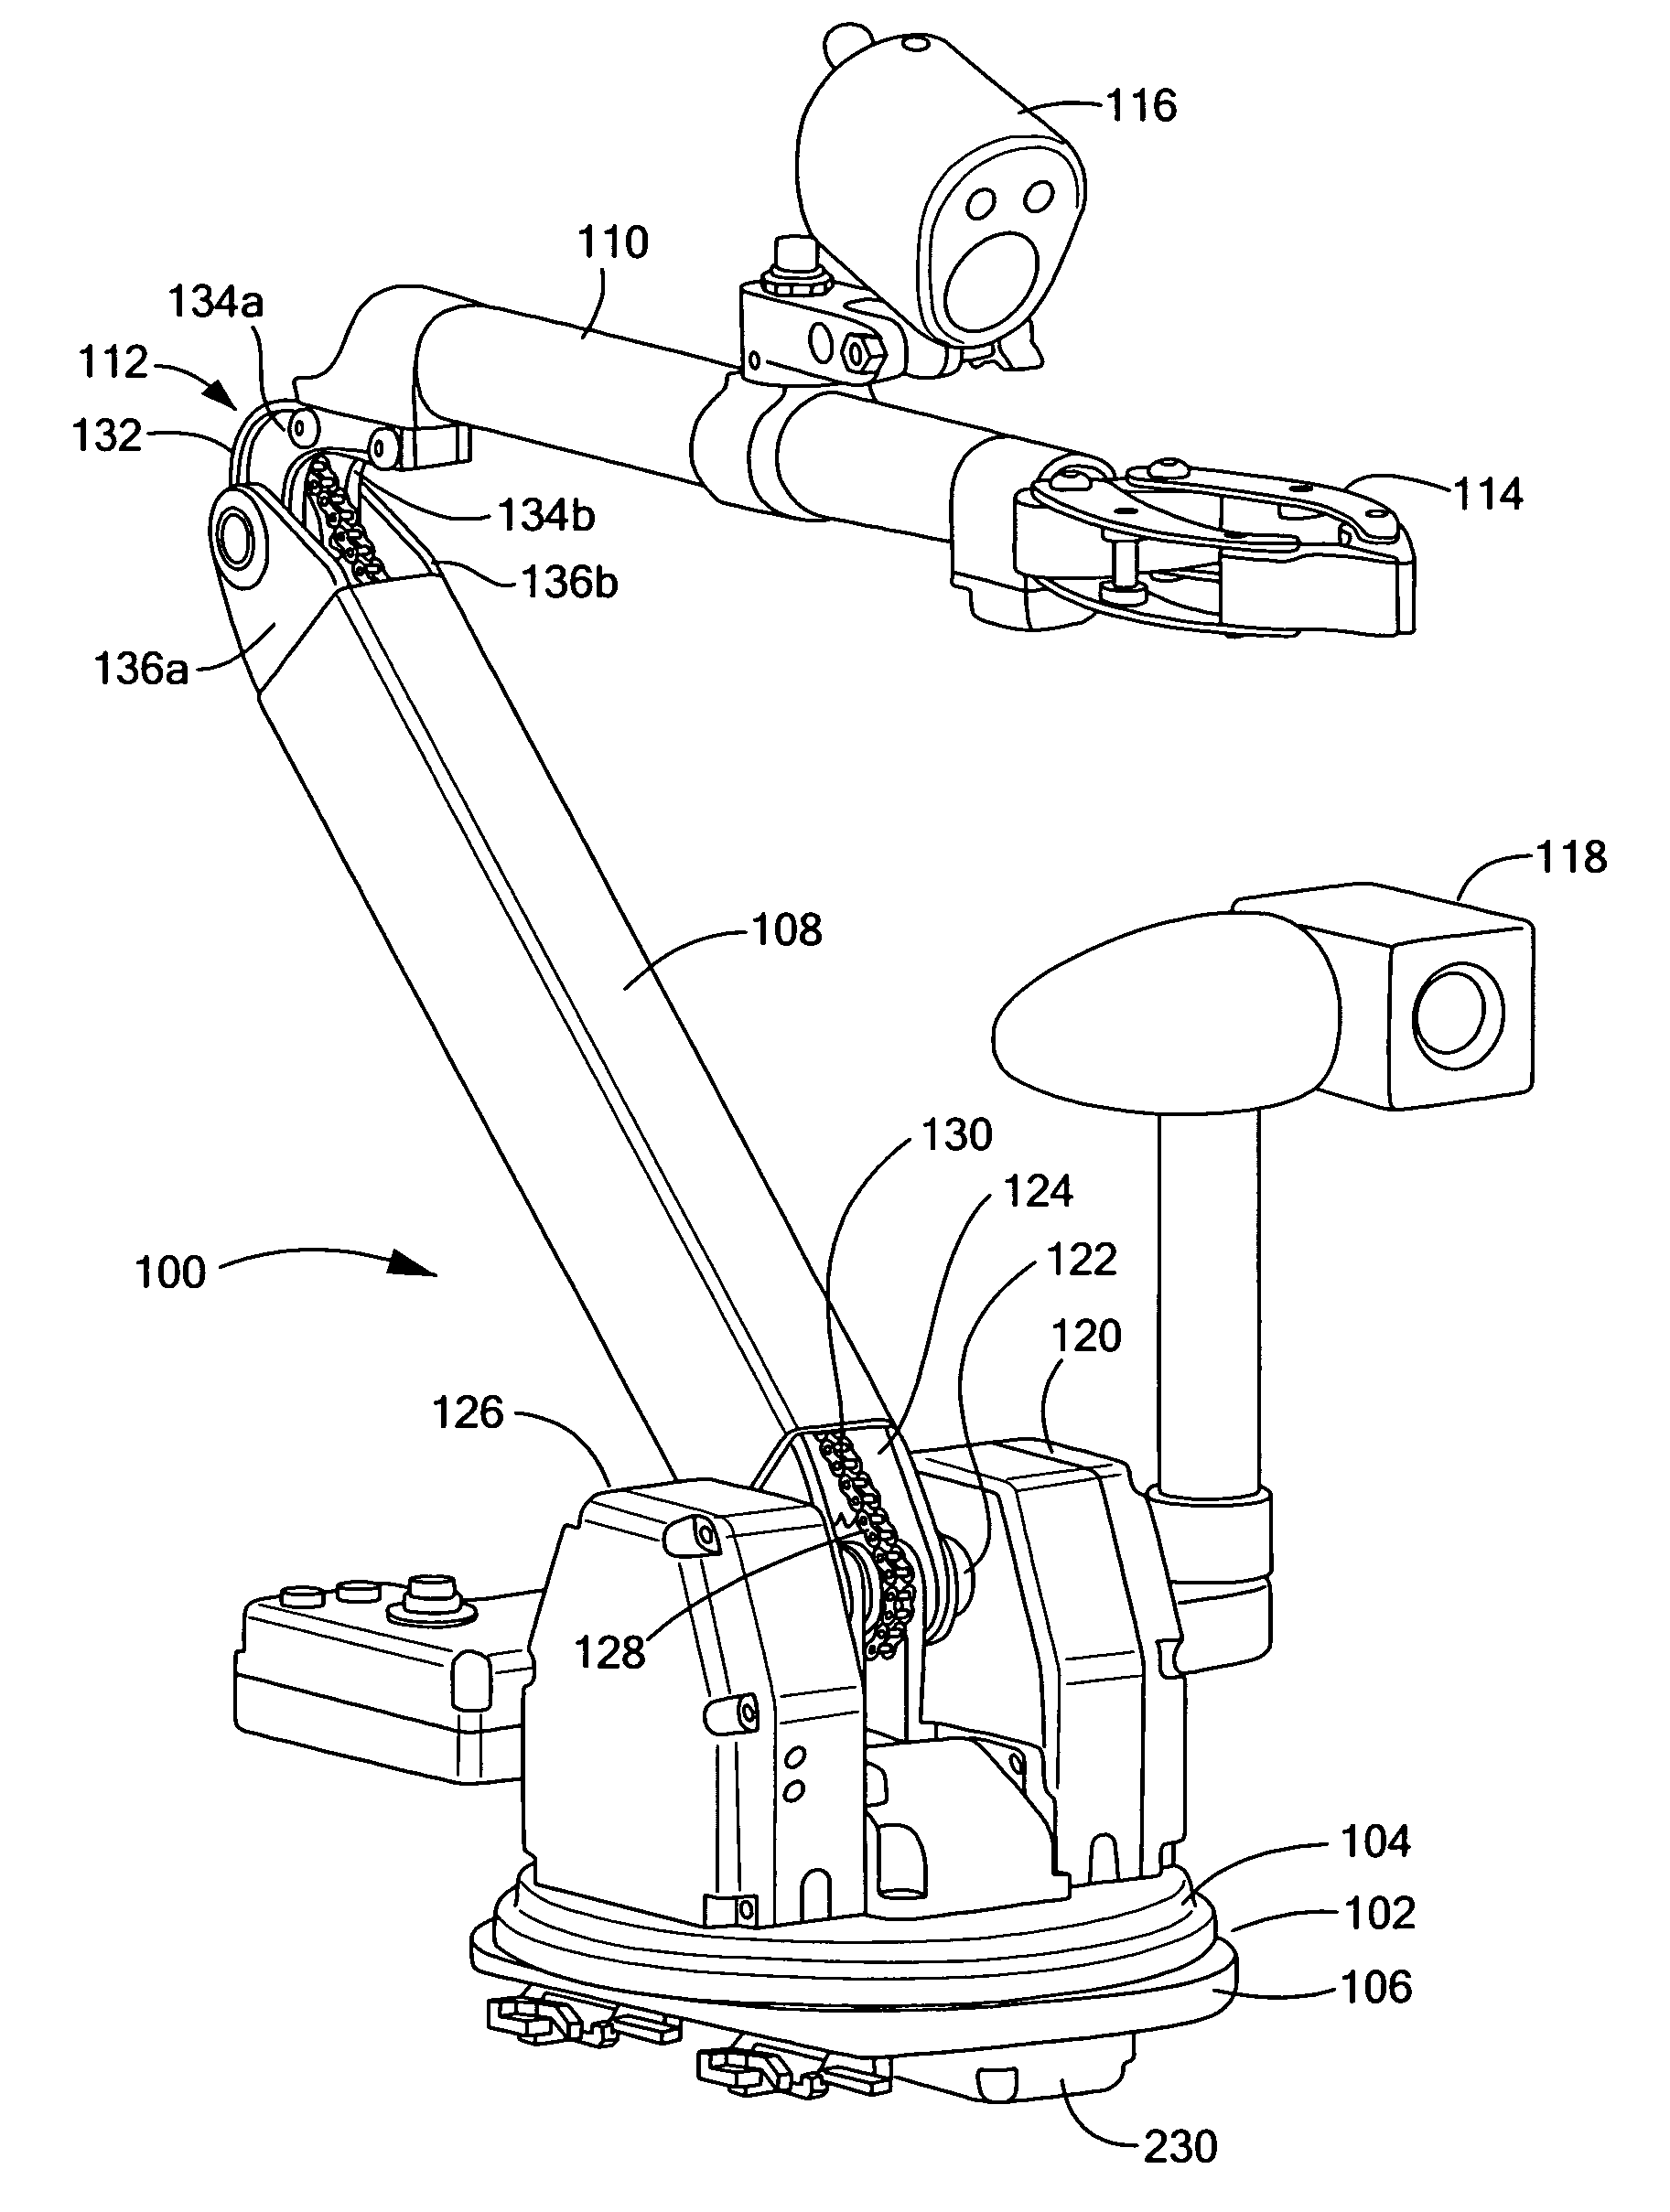 arm the of a assembly arm jacobian robot arm and